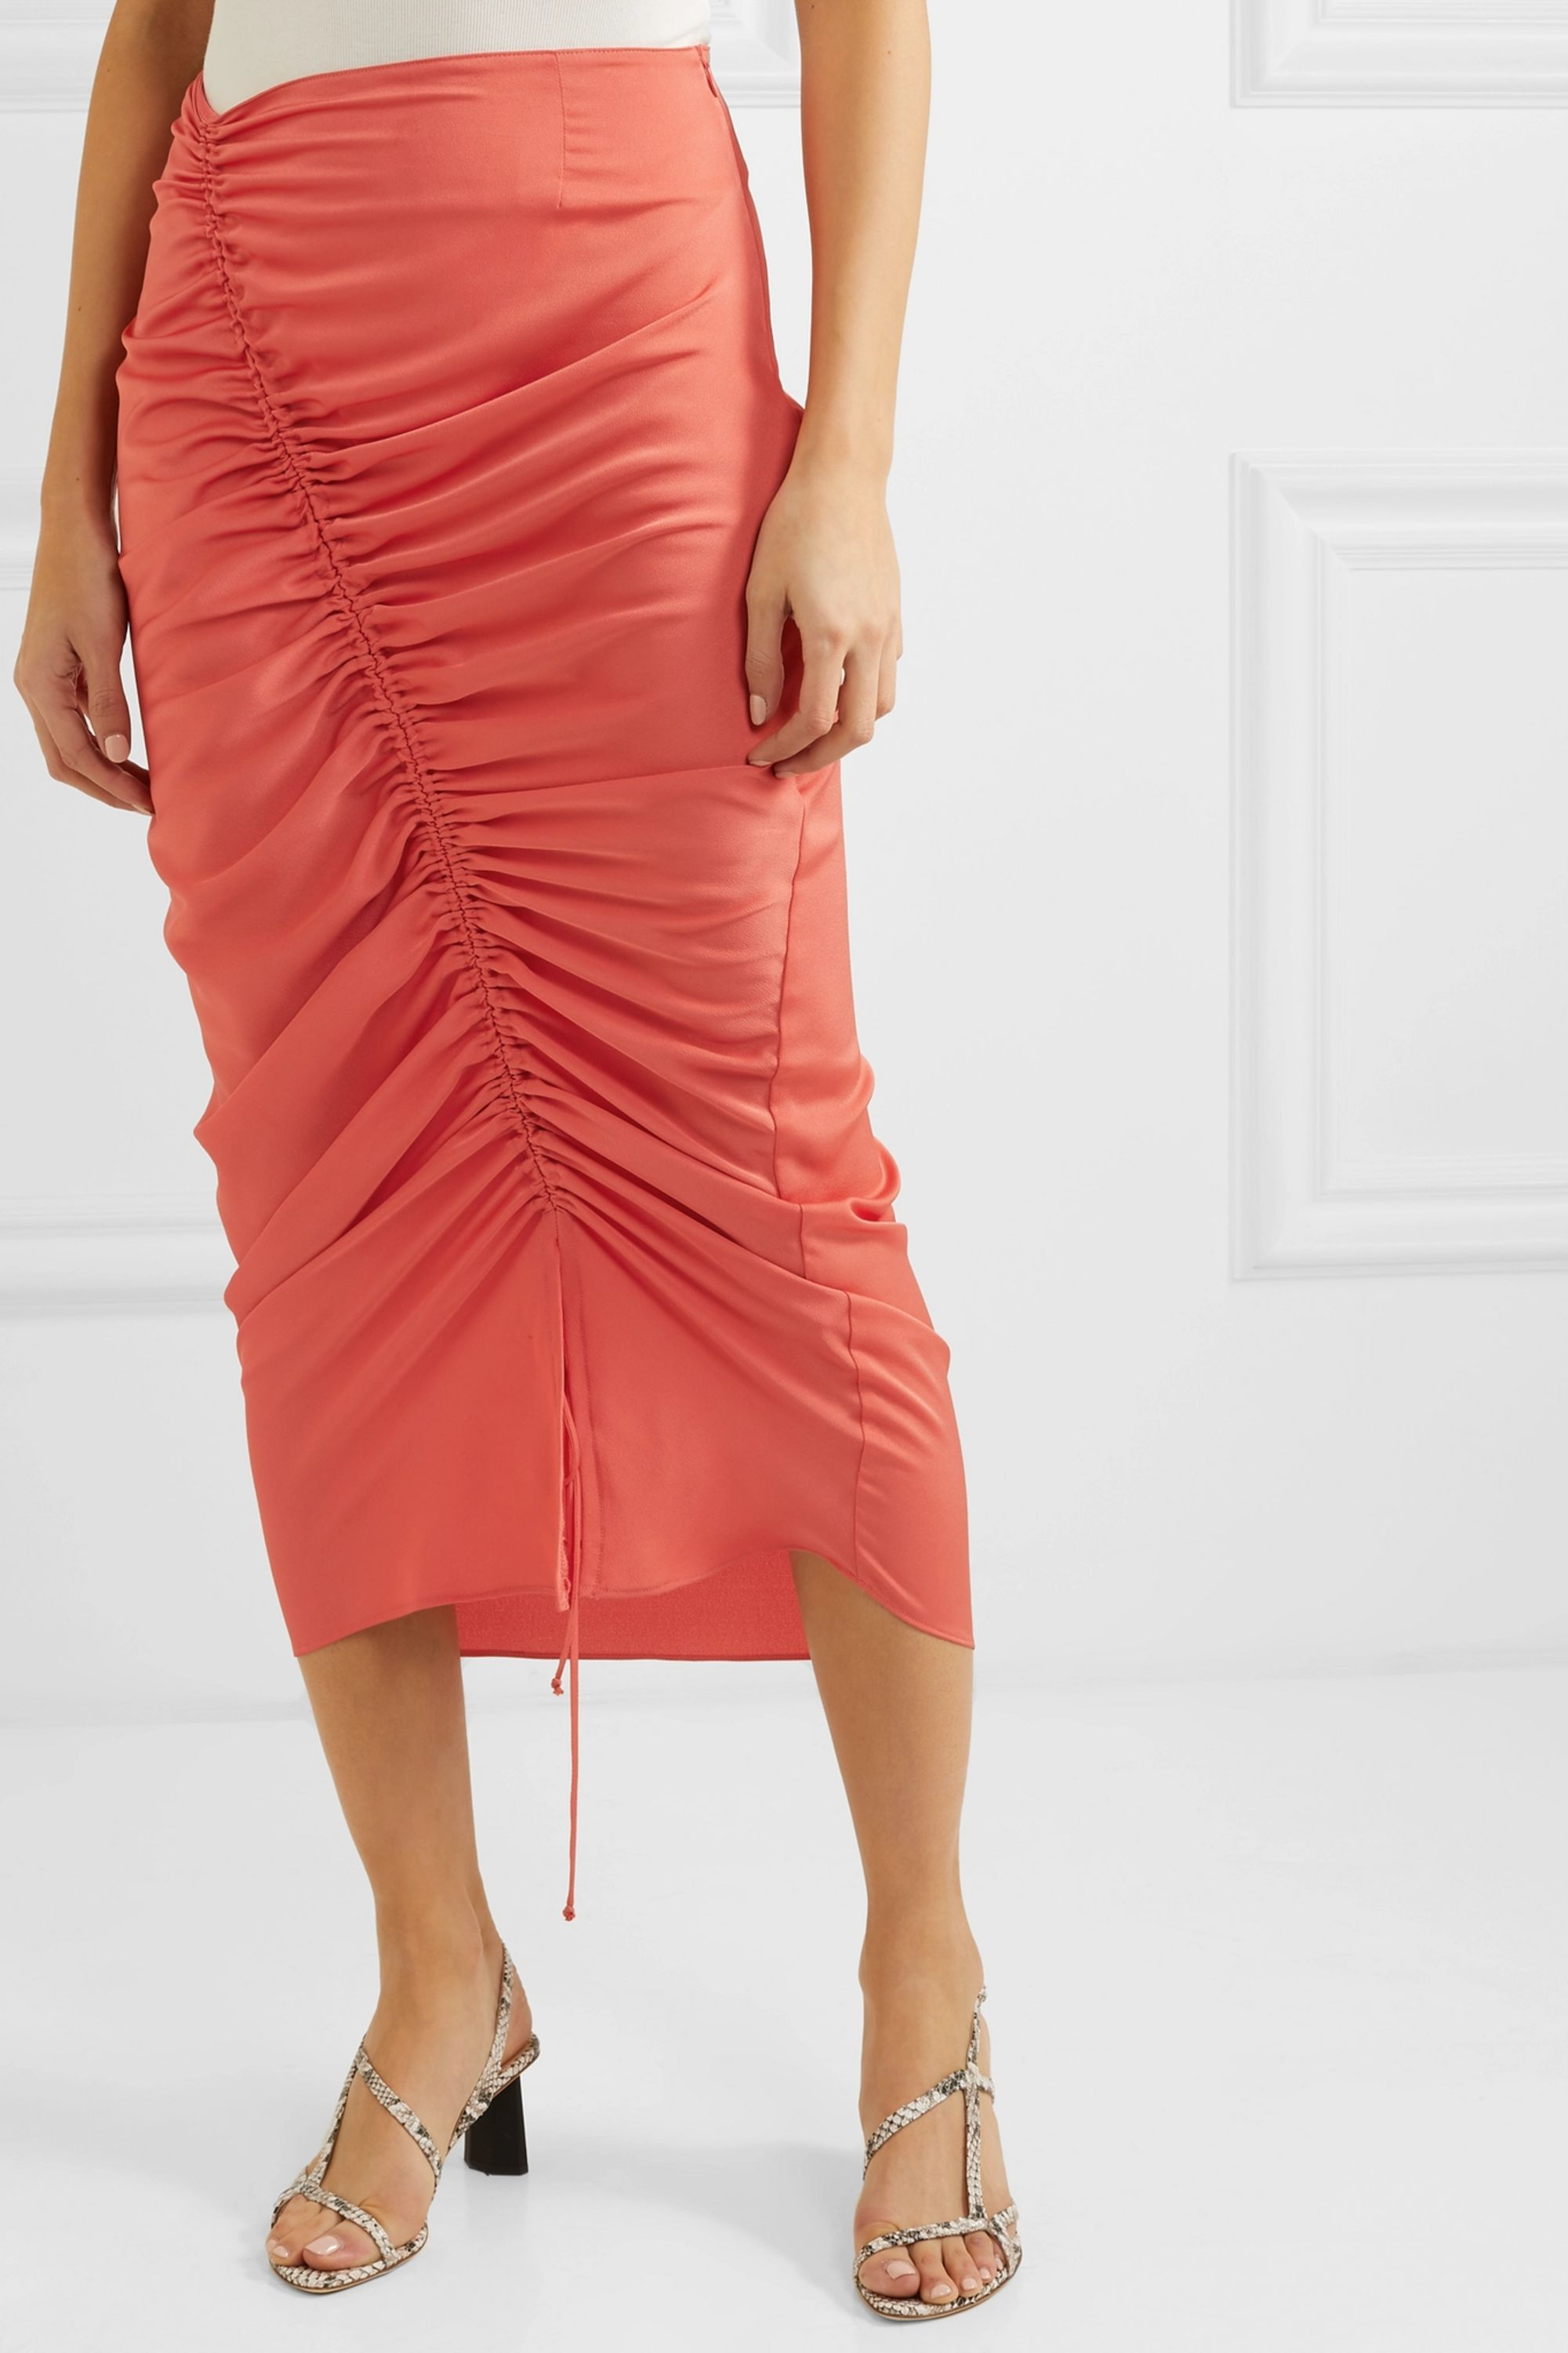 The Line By K Sisilia ruched hammered-satin skirt